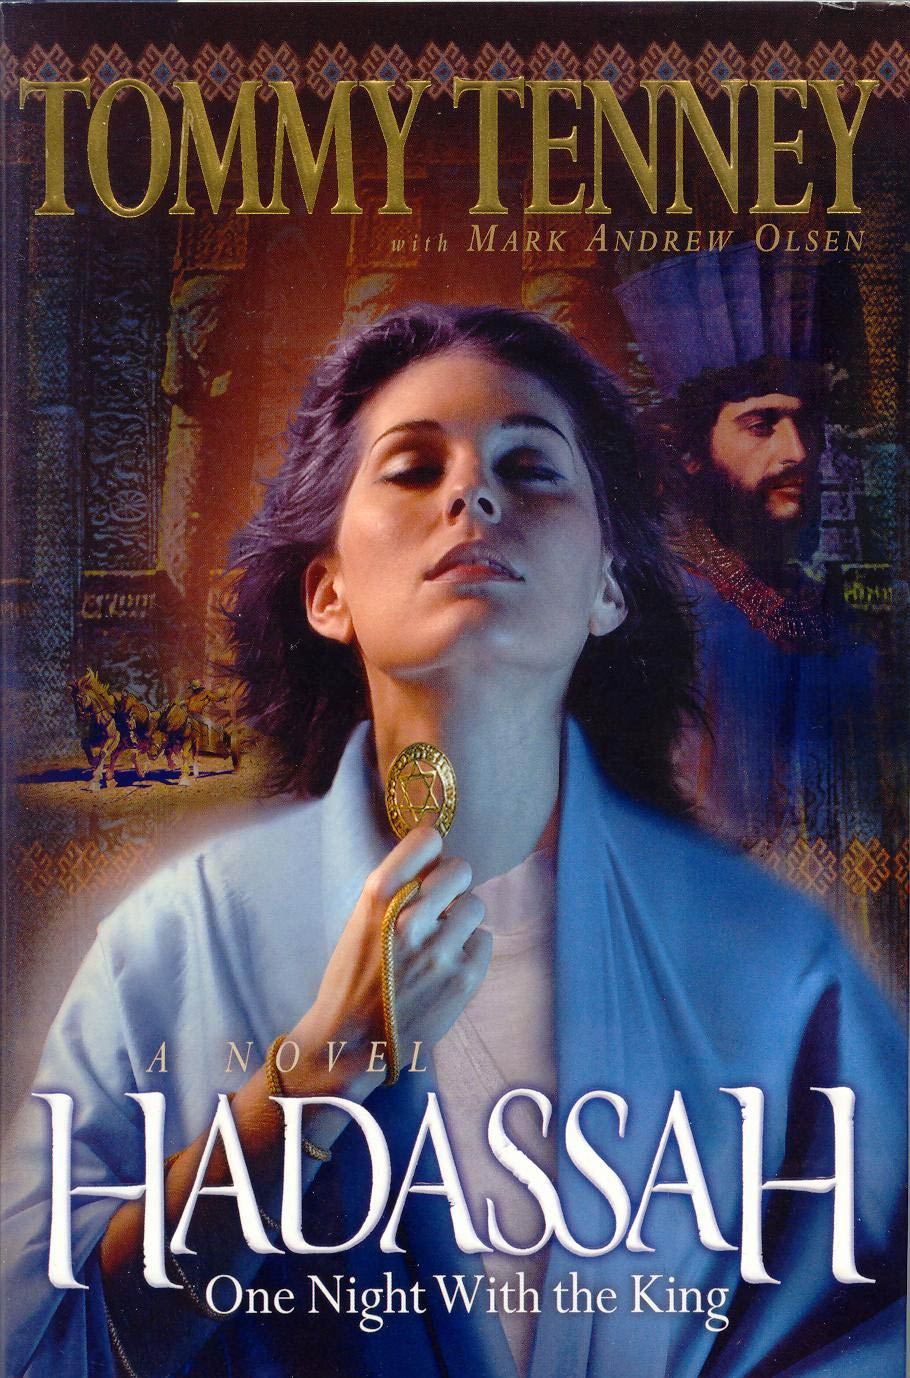 Hadassah, One Night with the King